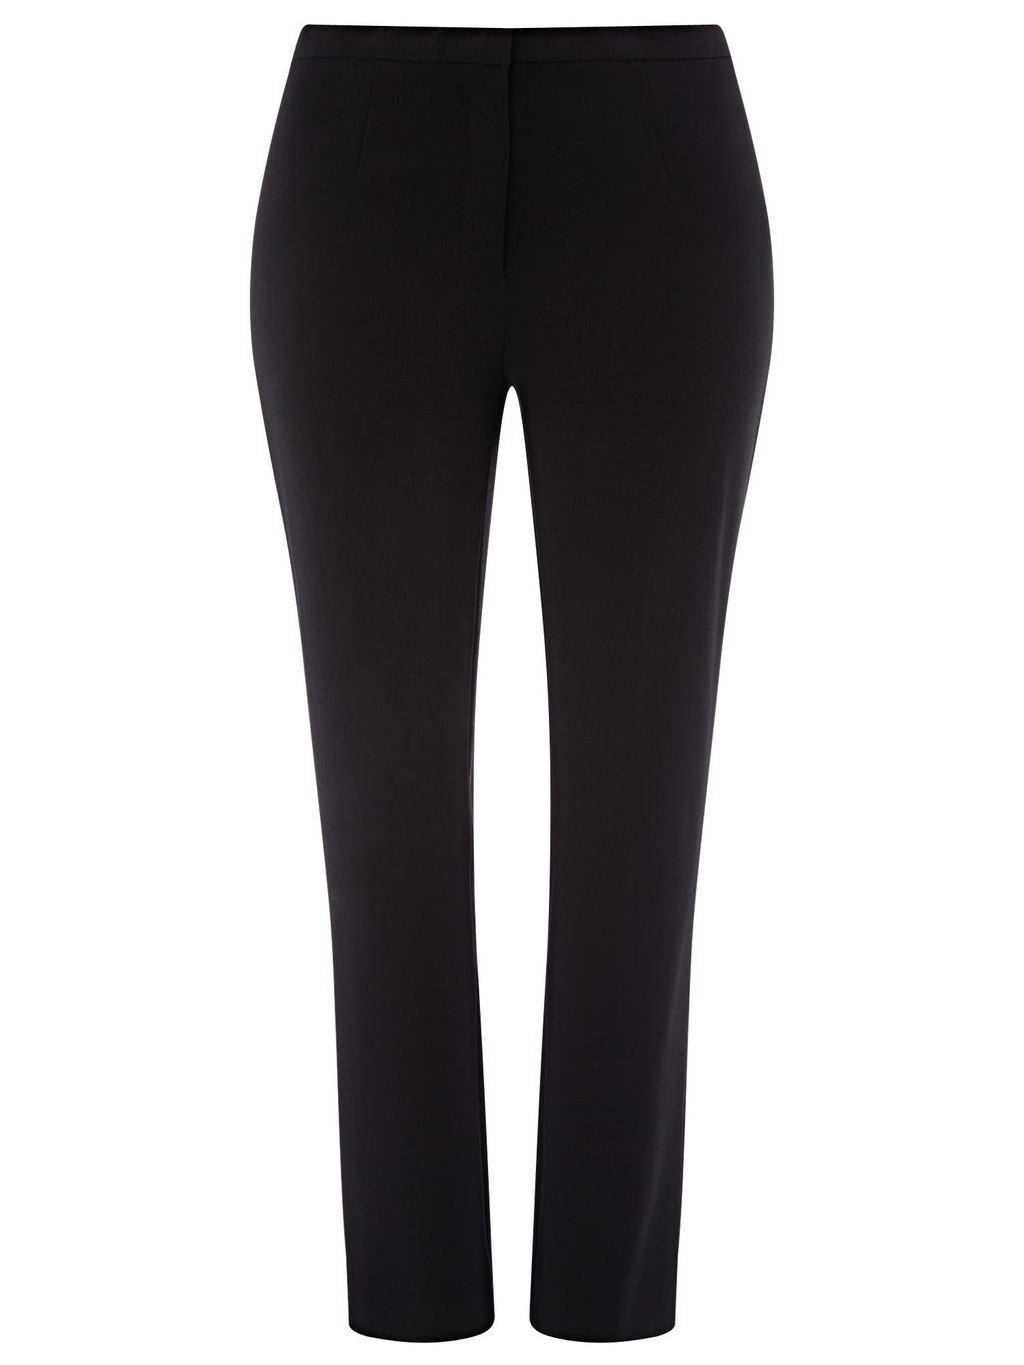 Slim Leg Tapered Trouser - length: standard; pattern: plain; waist: mid/regular rise; predominant colour: black; occasions: casual, work, creative work; fibres: polyester/polyamide - 100%; fit: slim leg; pattern type: fabric; texture group: woven light midweight; style: standard; season: s/s 2016; wardrobe: basic